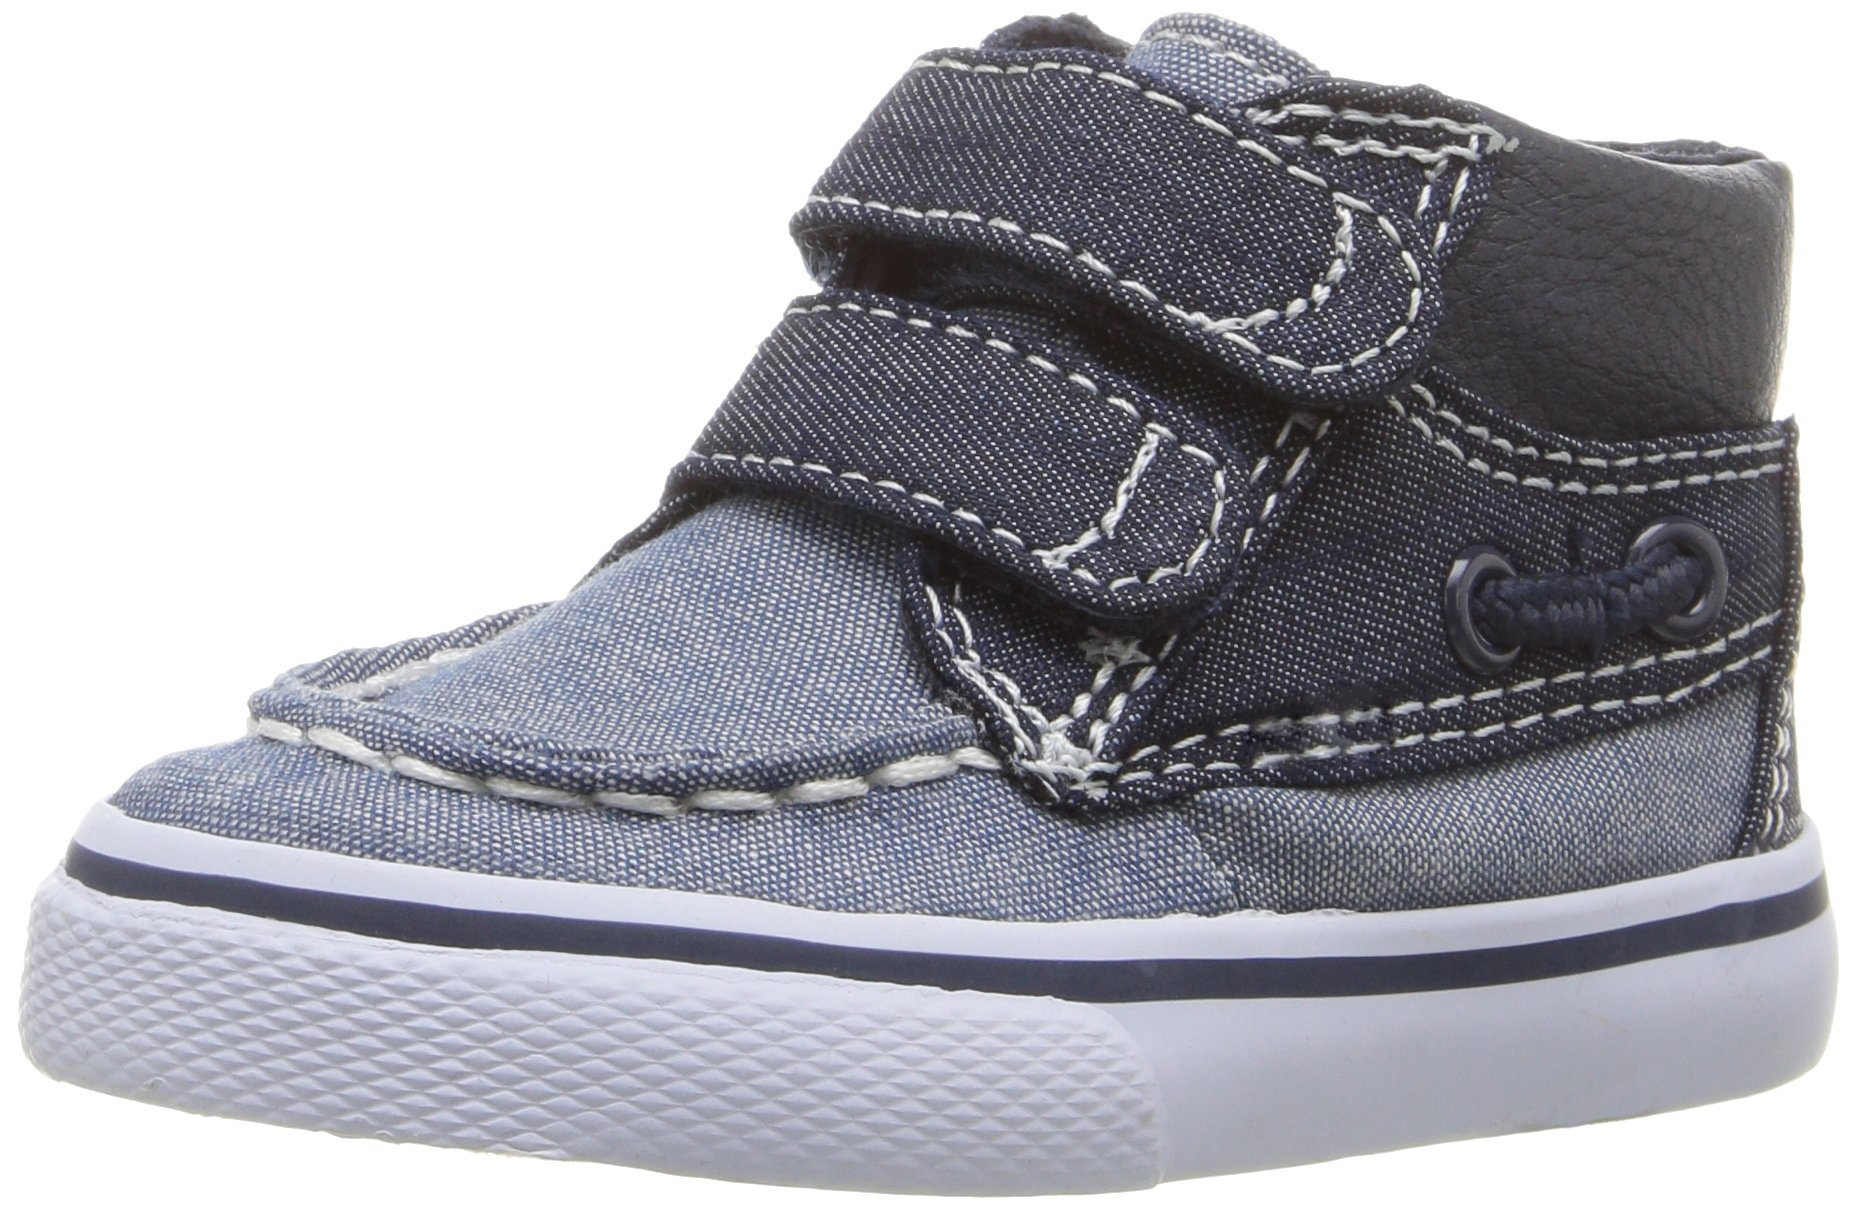 The Children's Place Boys Boat Shoe Blue, 9 M US Toddler